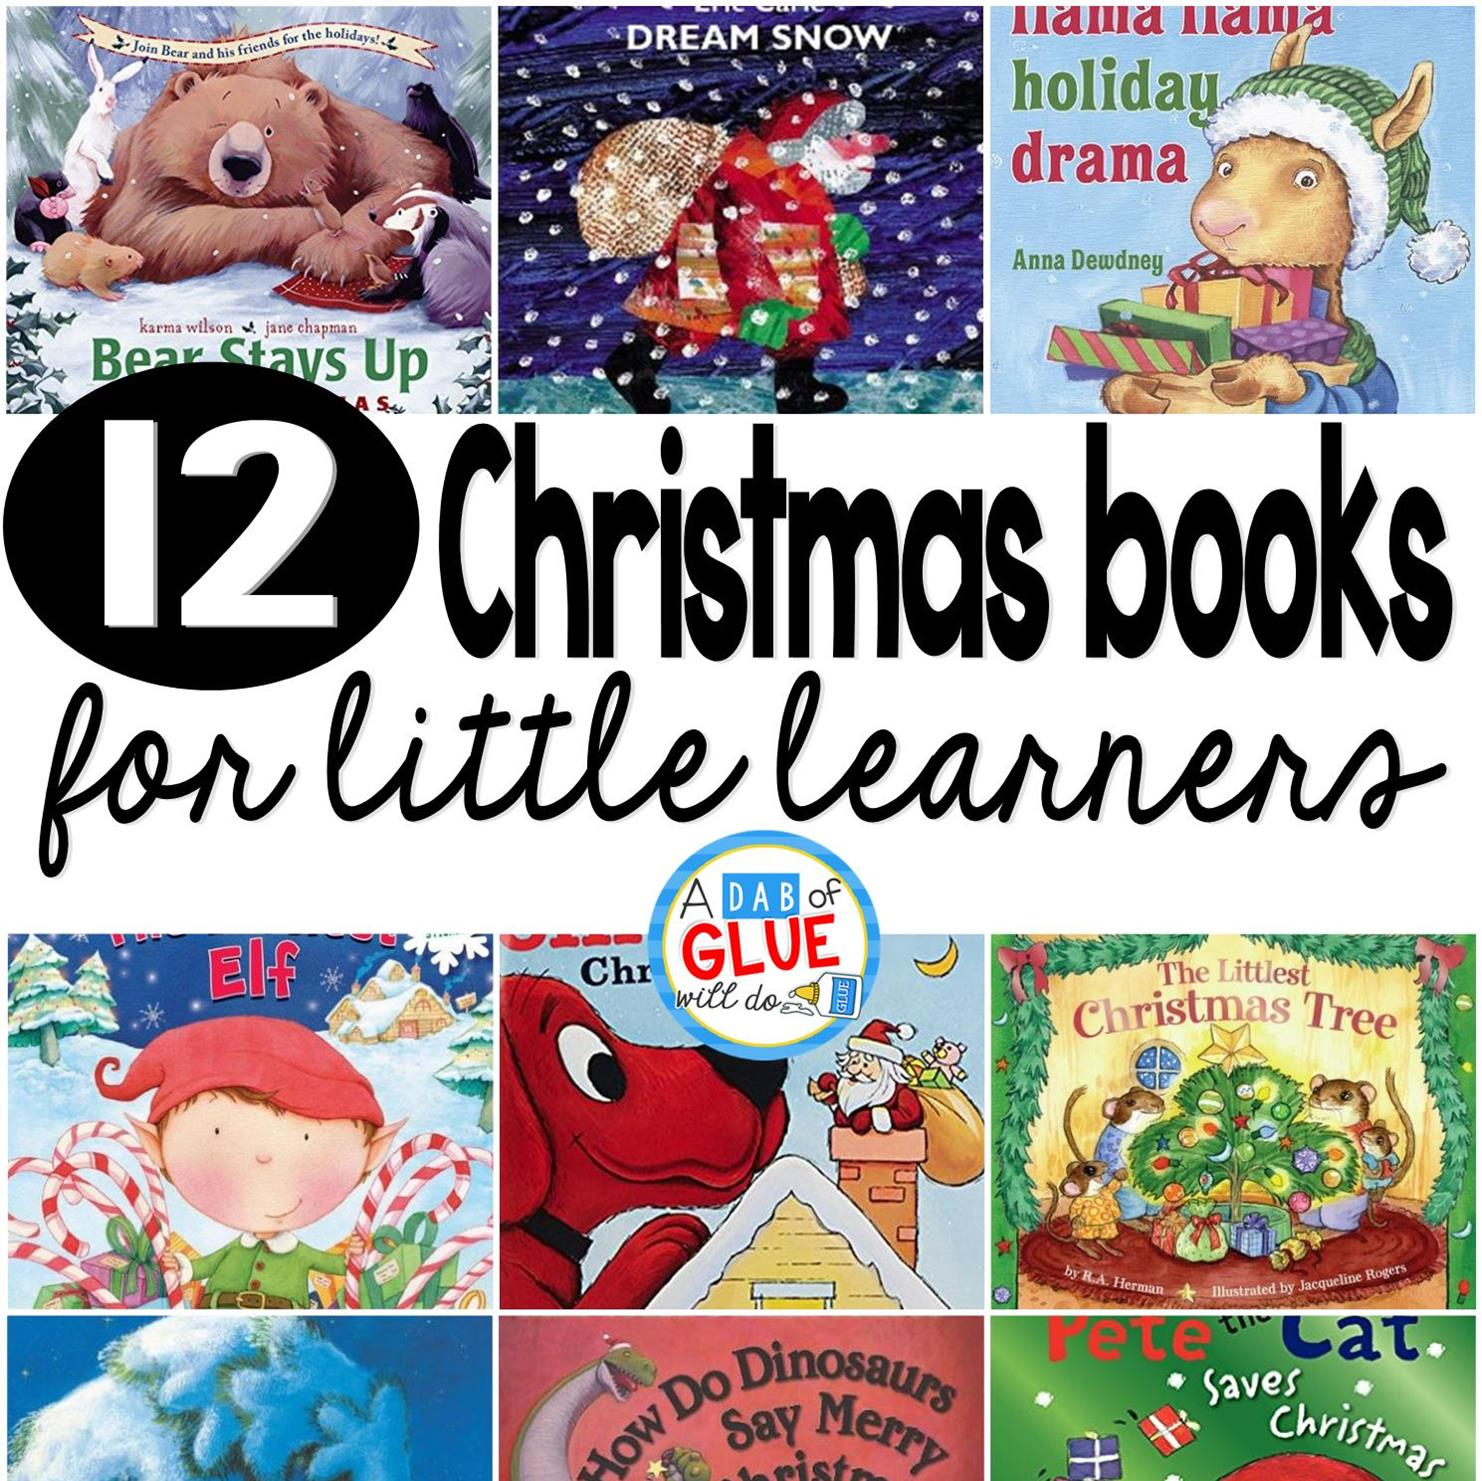 https://www.adabofgluewilldo.com/books-about-christmas/